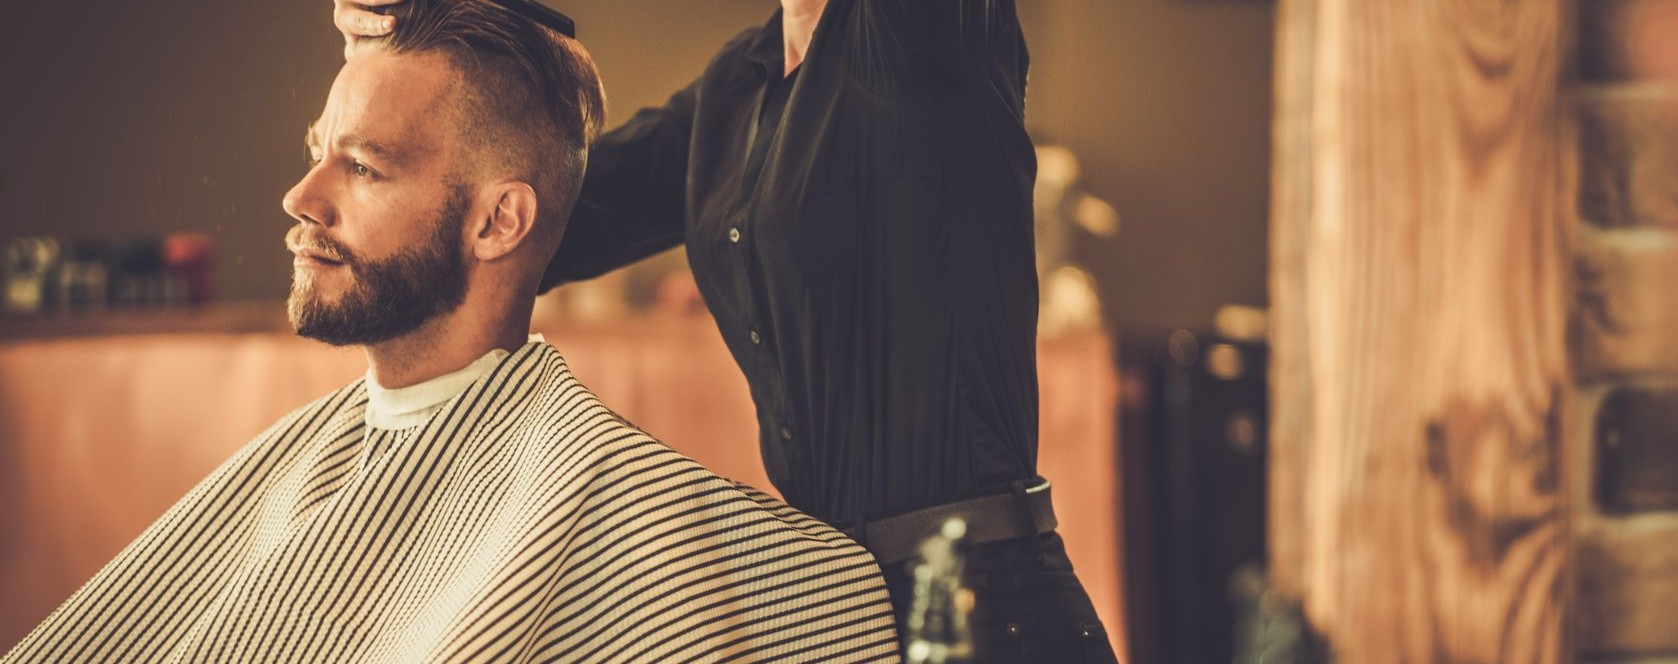 way-out-west-barbering-1678x664